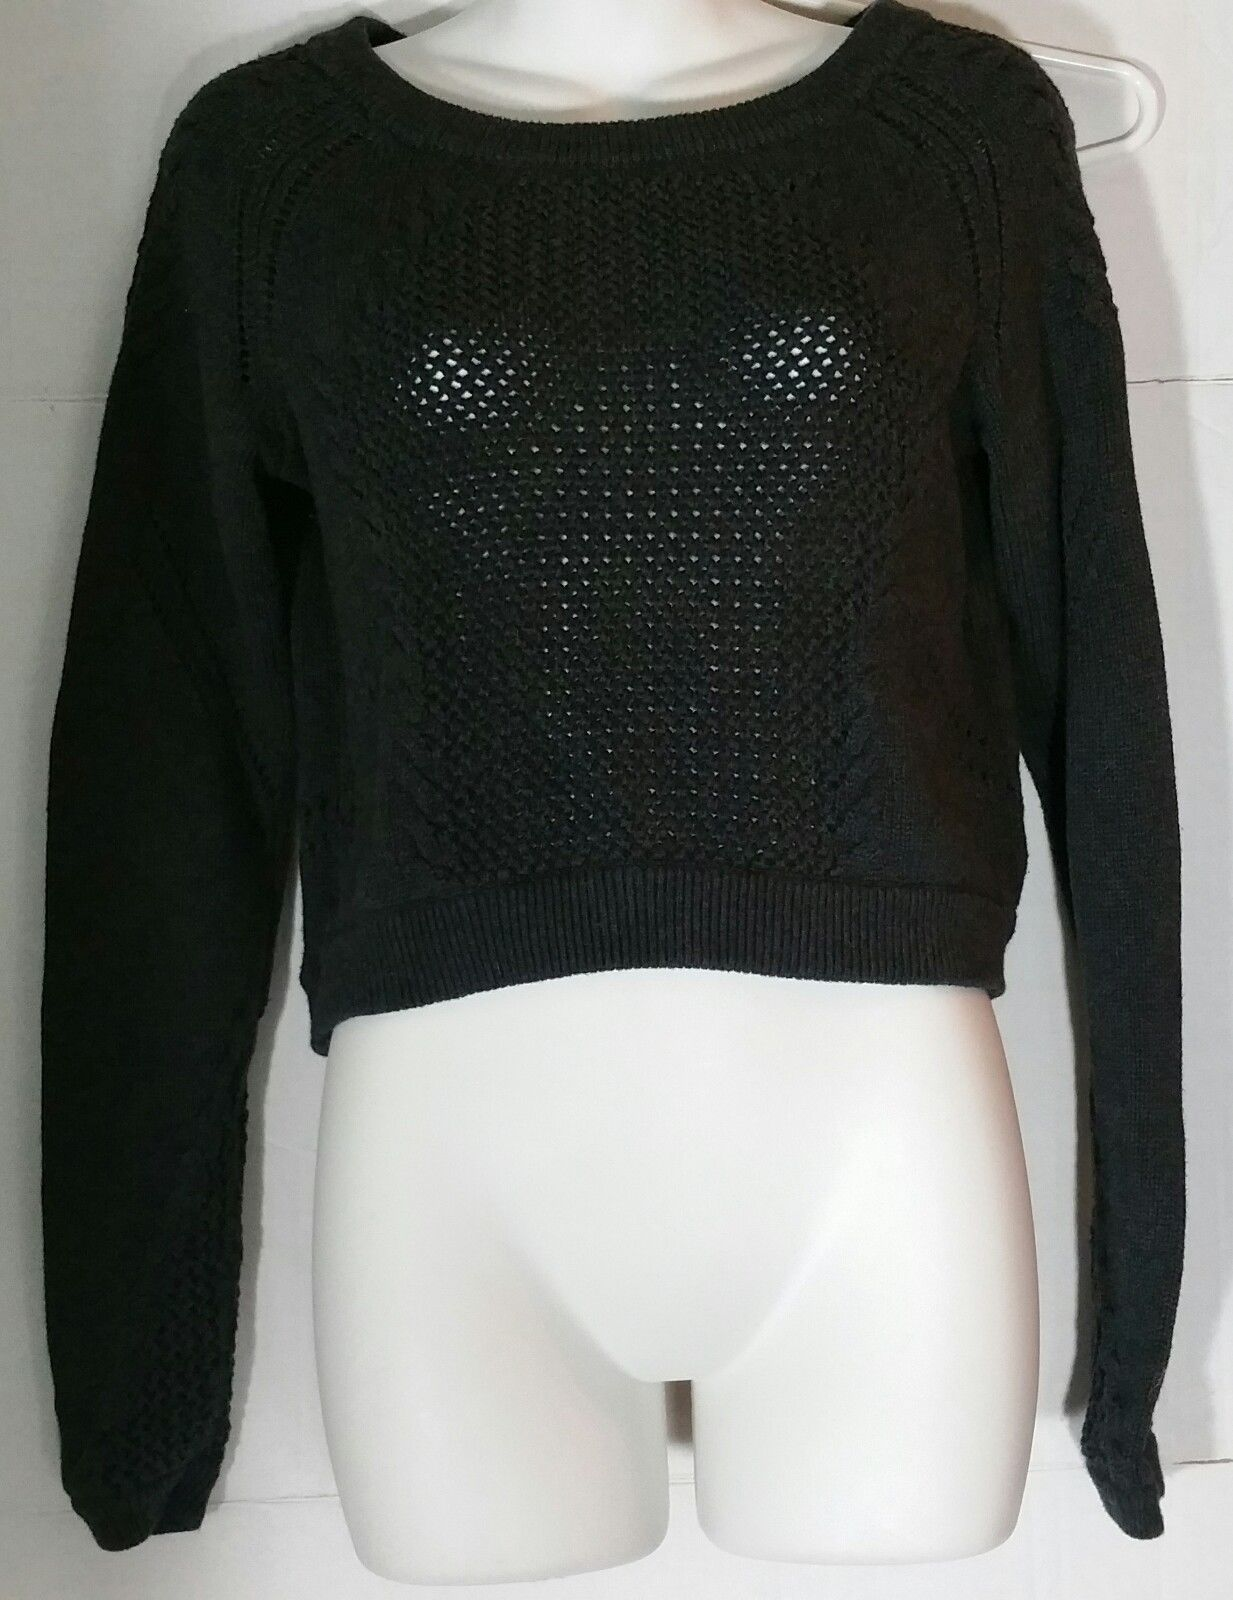 Primary image for Lululemon Be Present Sweater Top 6 8 Pullover Dark Gray Cropped Crop